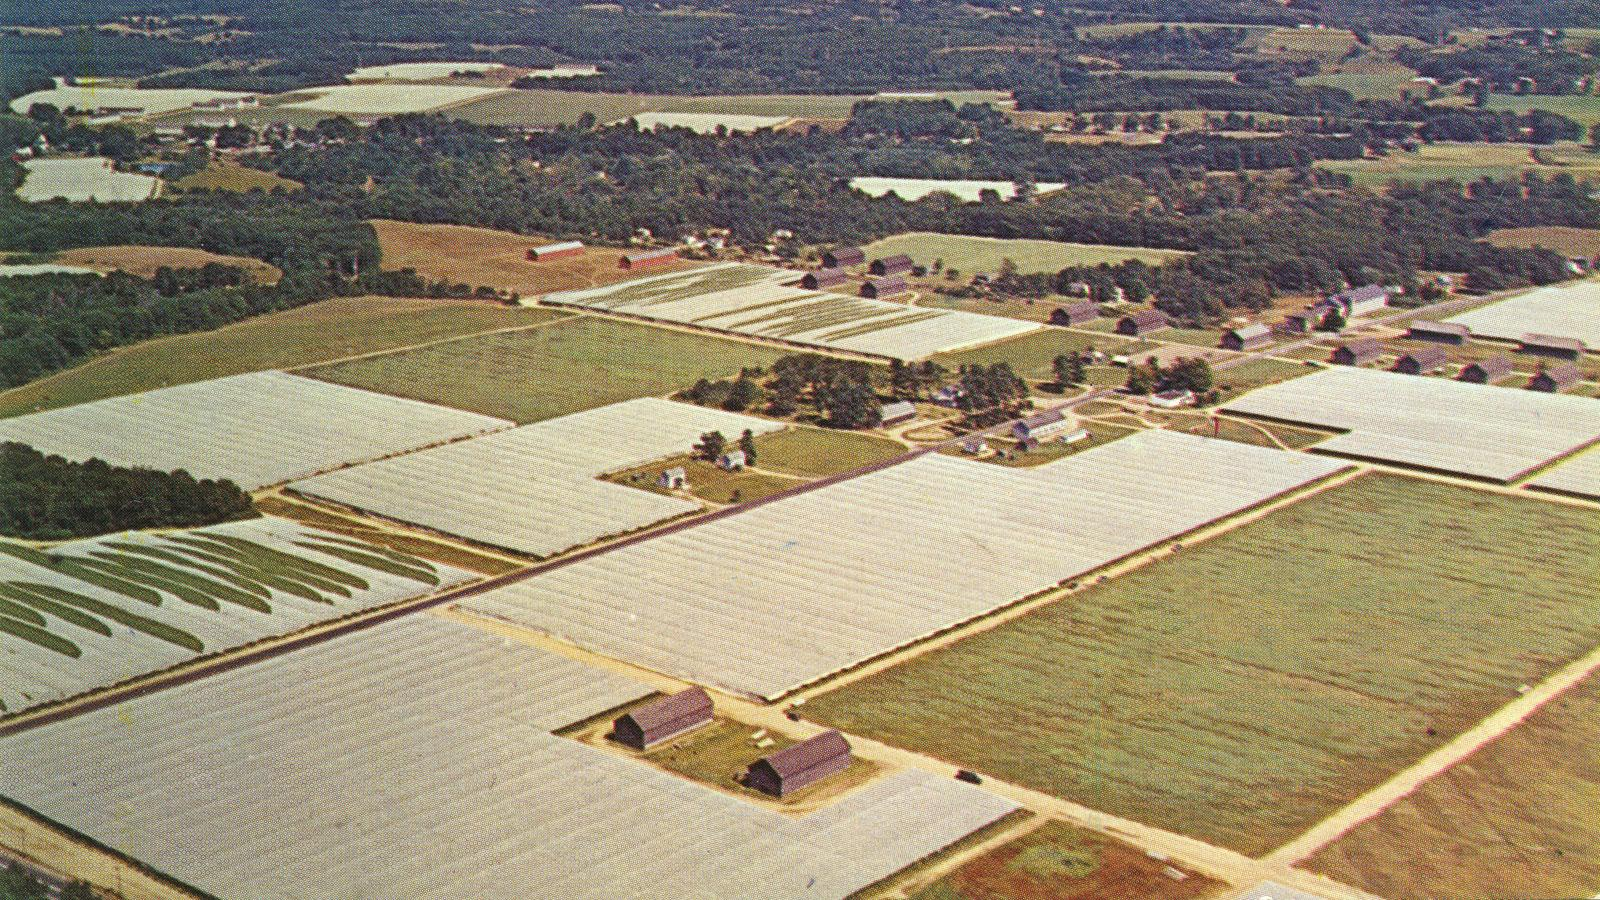 An aerial view from the 1960s showing the expansive shade field tents in the Connecticut River Valley. Around 81,500 acres of shade tobacco was grown in the Valley during that time.